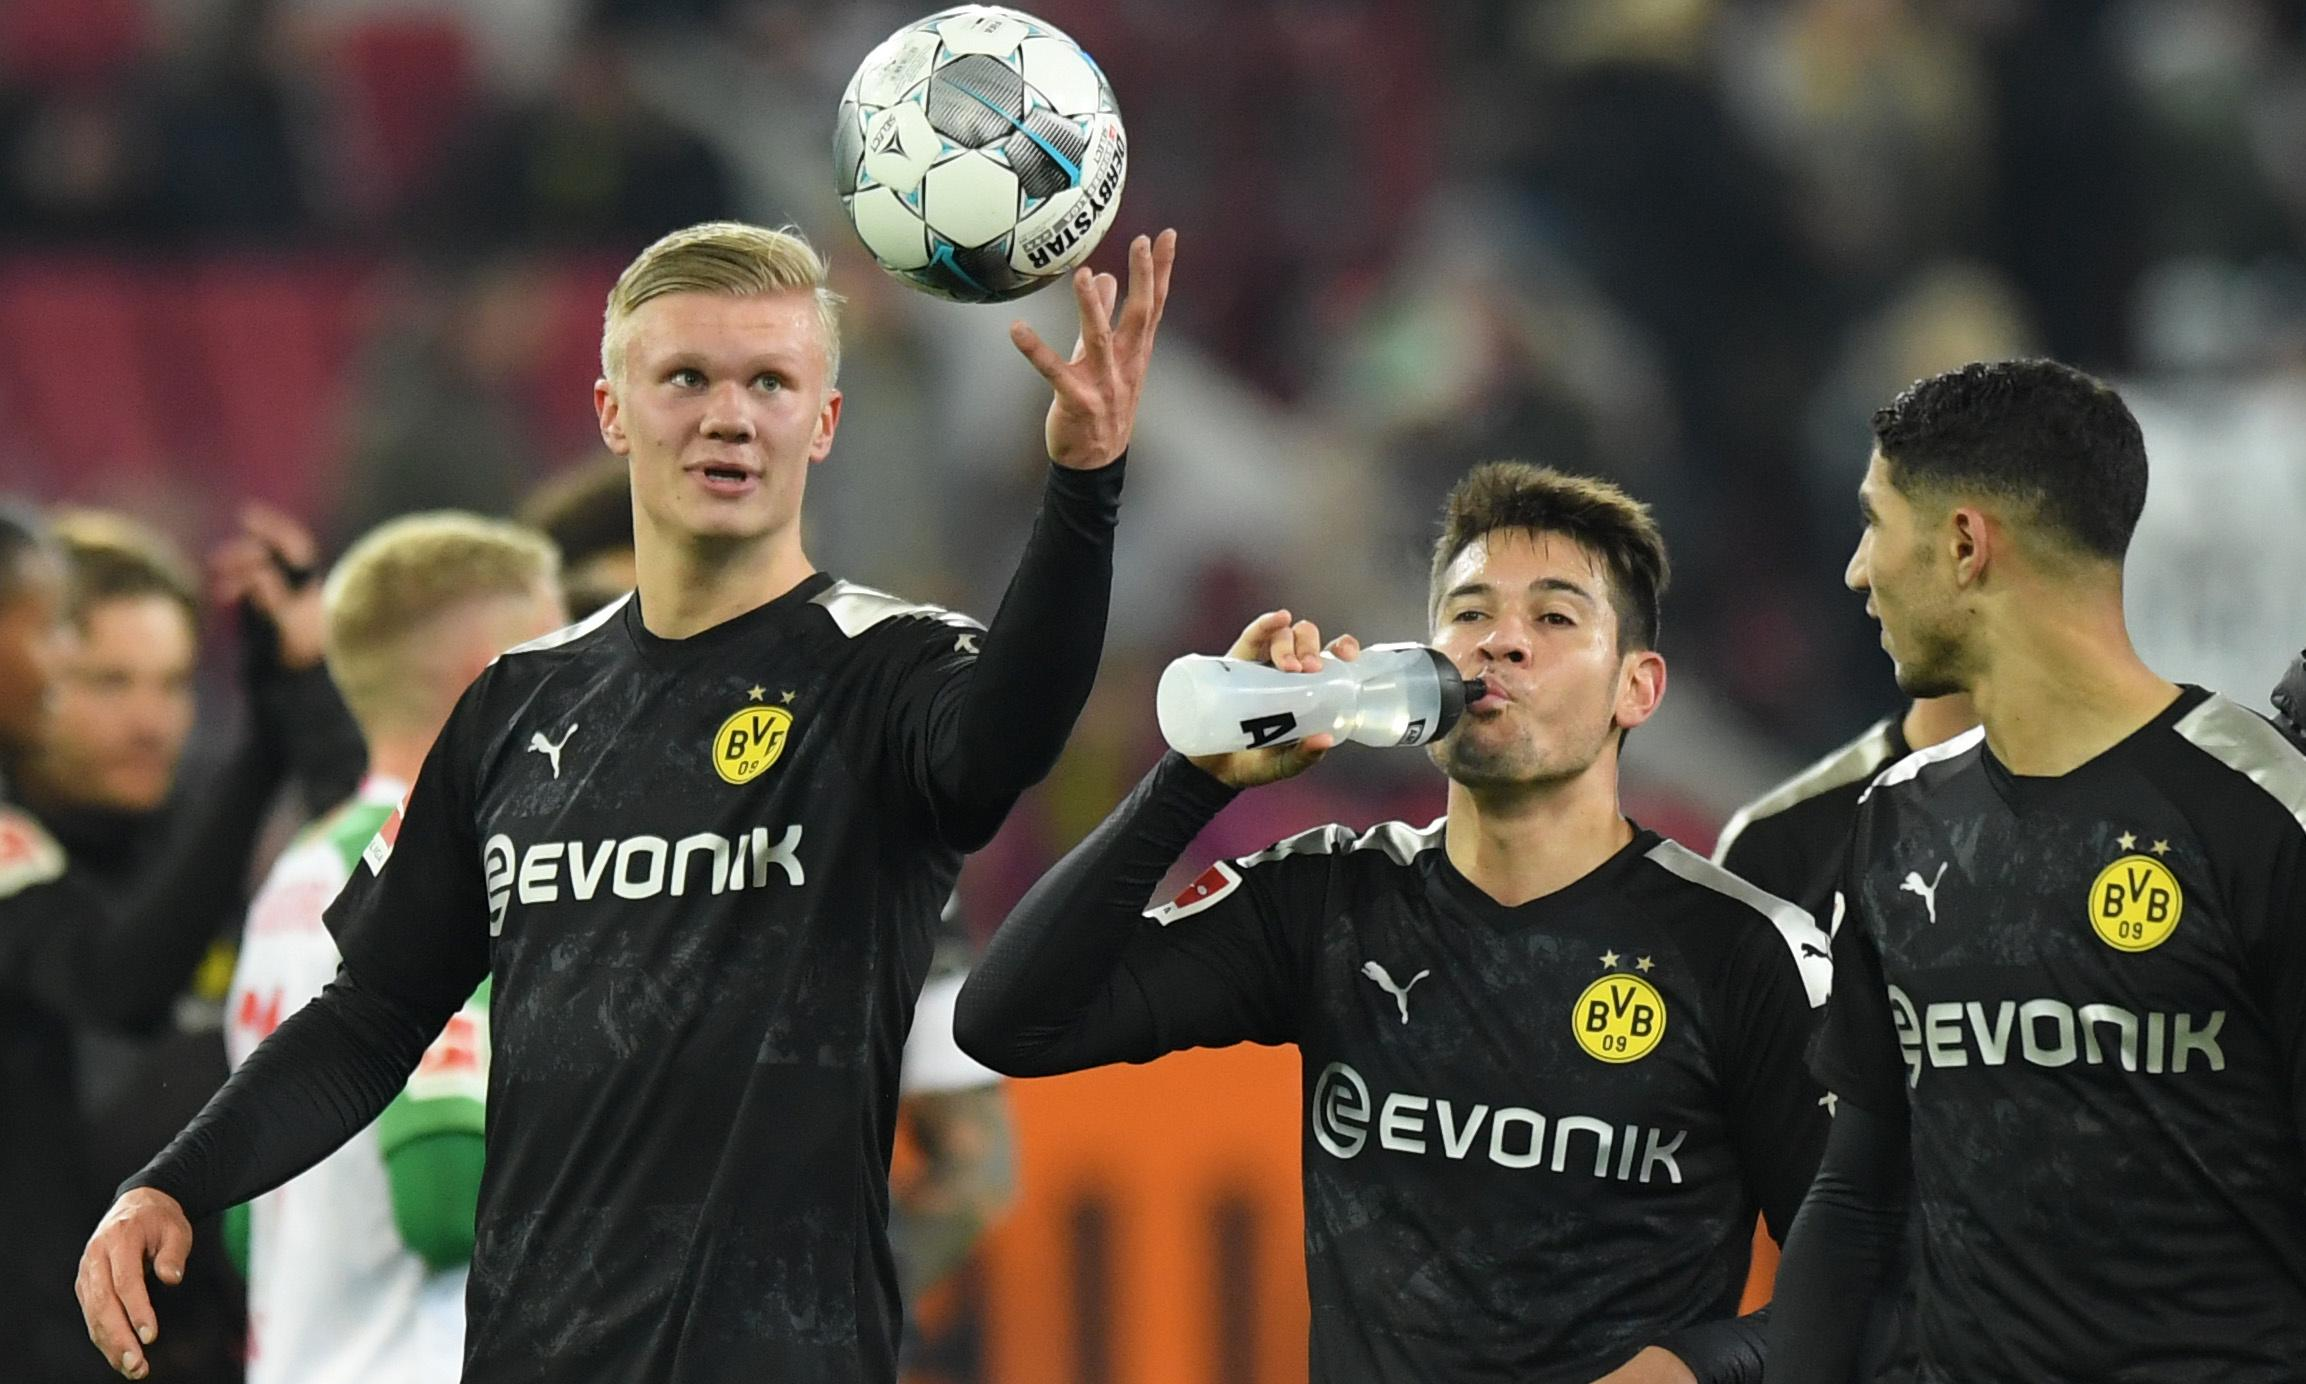 Erling Braut Haaland gatecrashes again to haul Dortmund out of mire